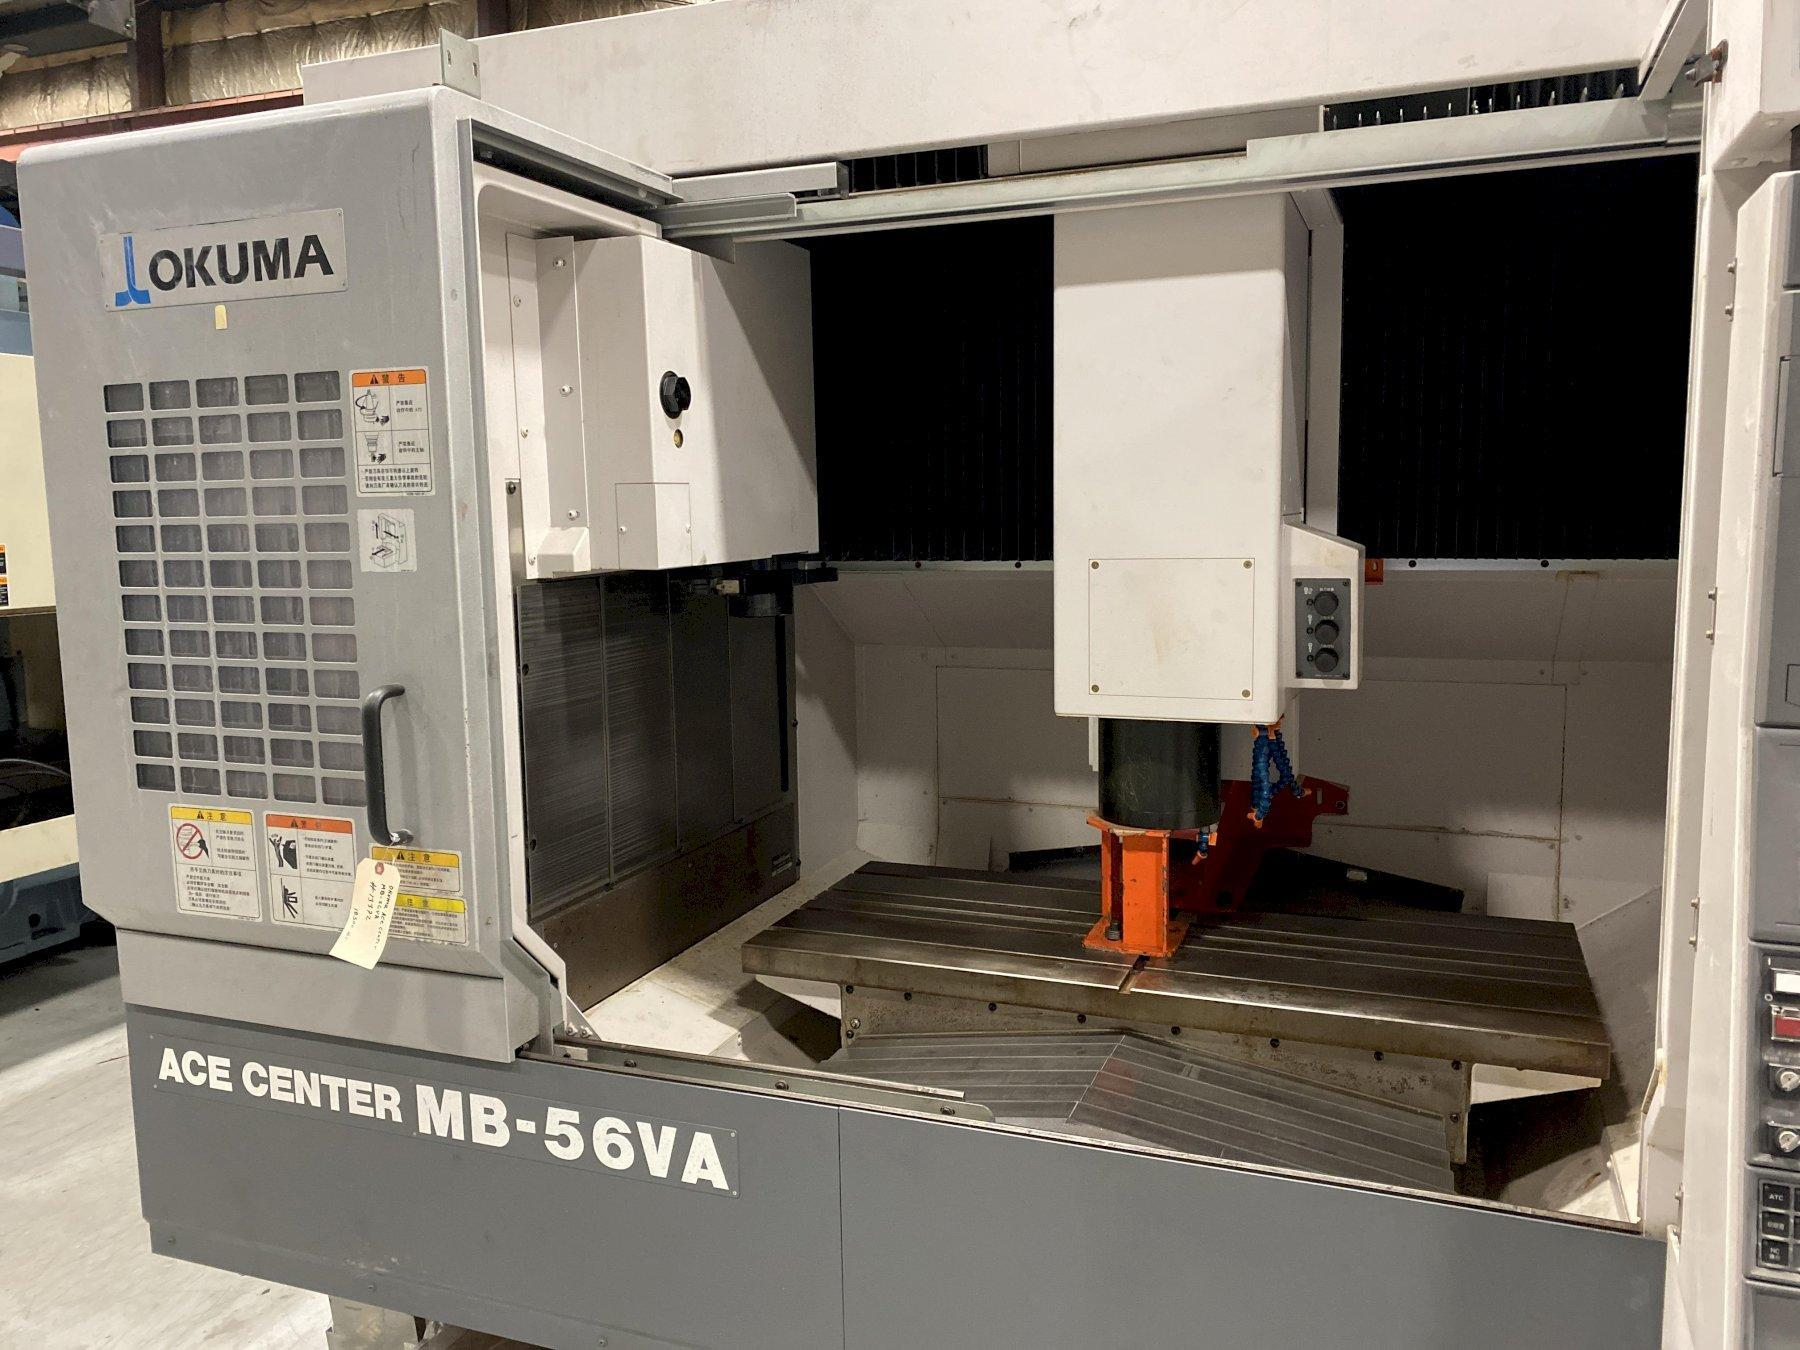 2012 OKUMA MB-56VA CNC Vertical Machining Center